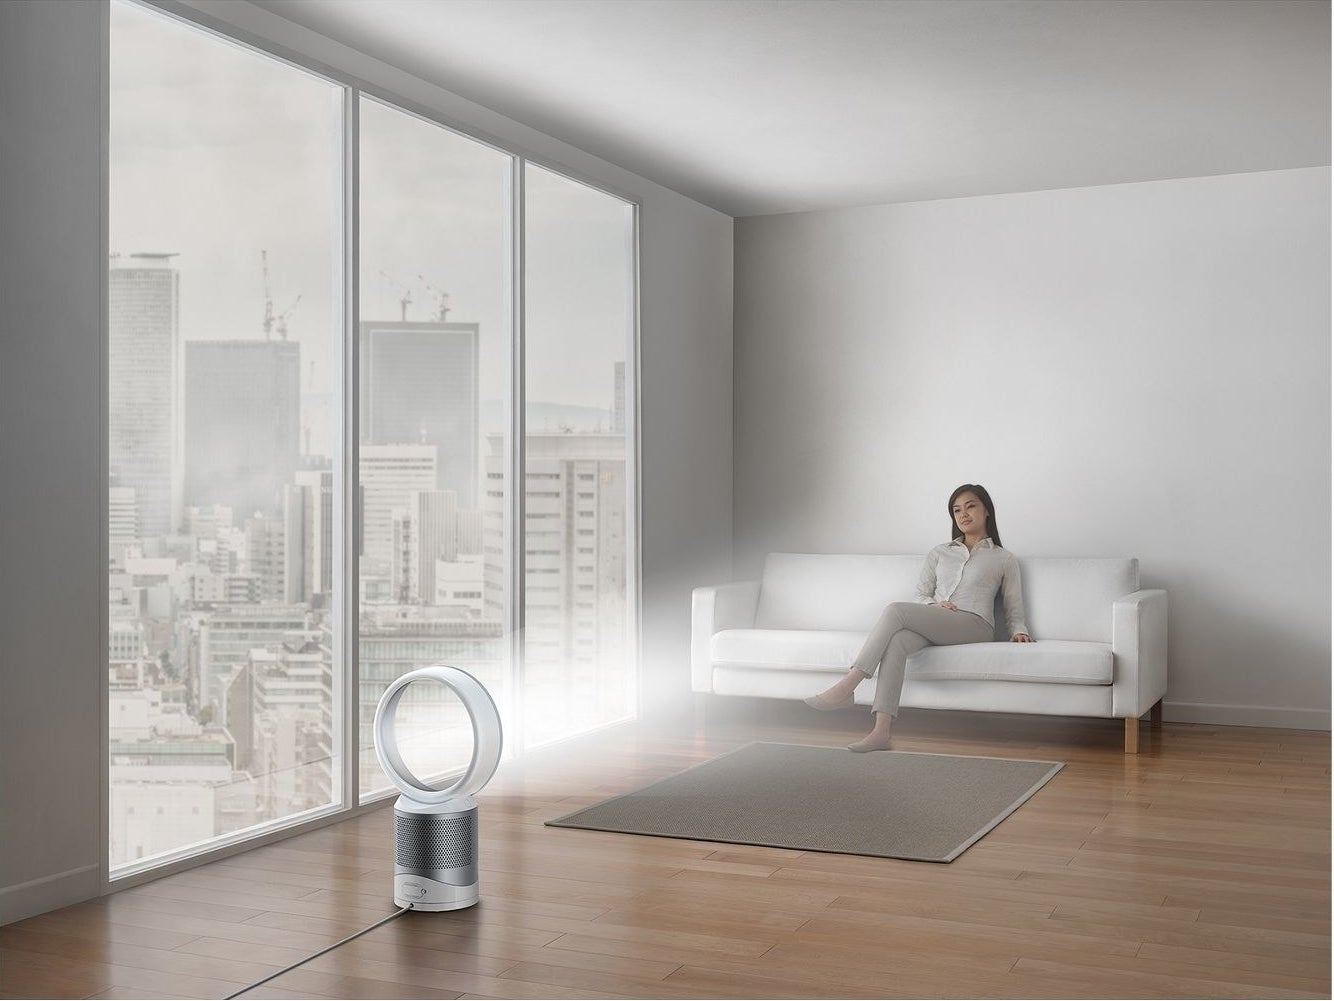 a small, circular fan-less air purifier in the middle of a living room